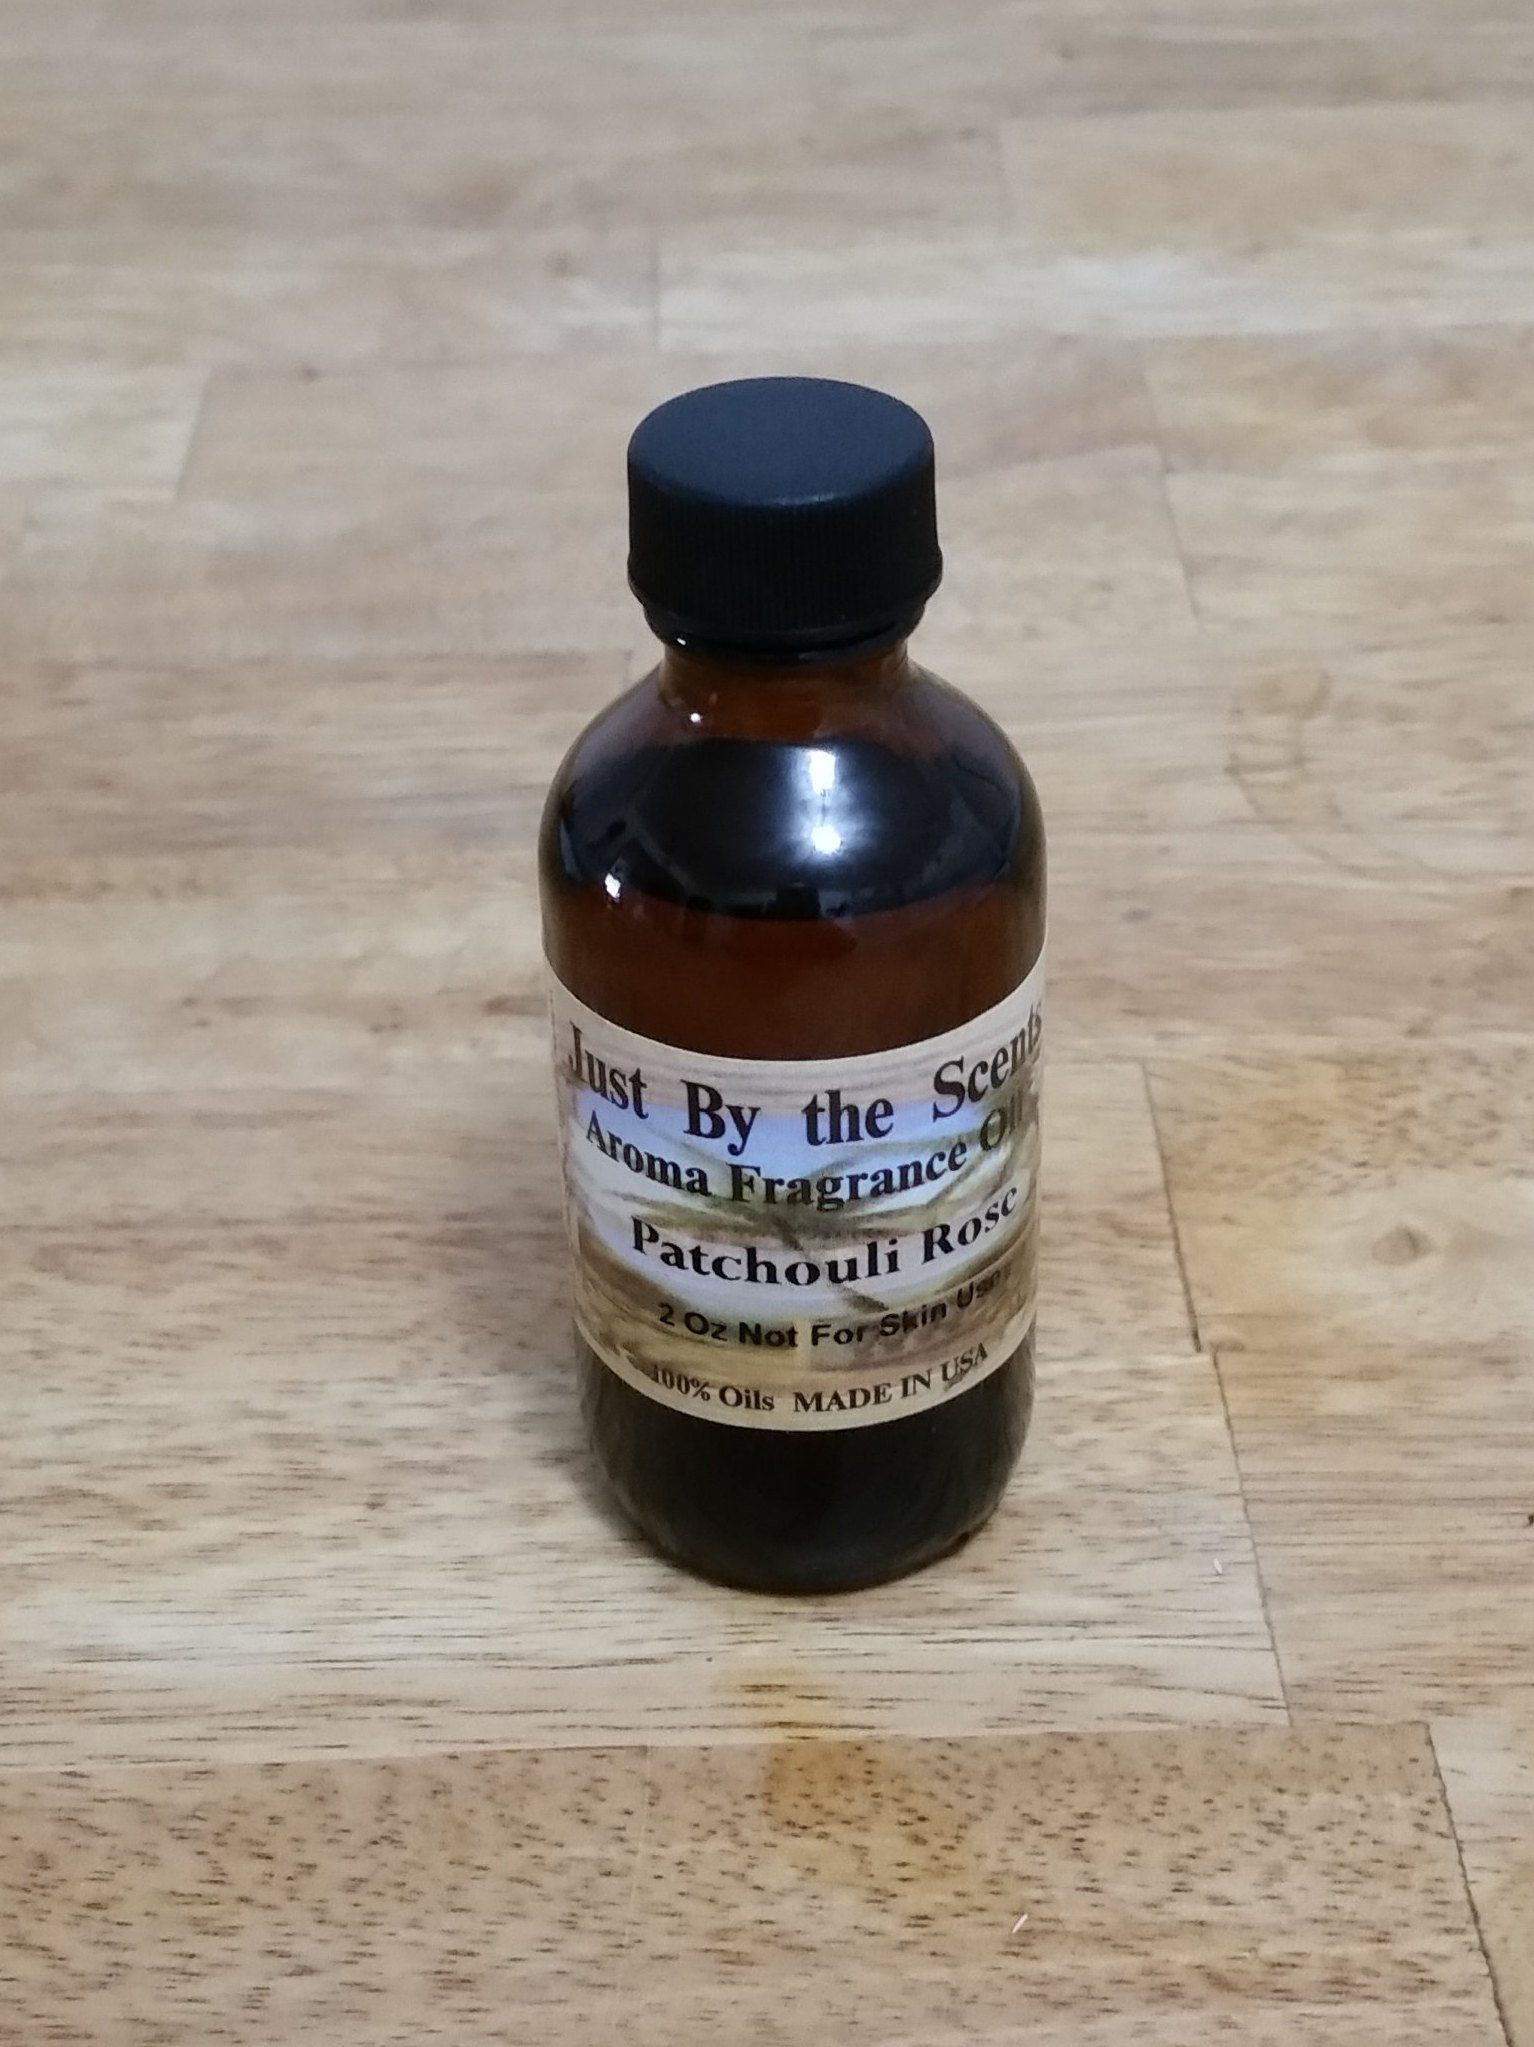 Patchouli Rose Aroma Fragrance Oil Just By The Scents 2 Ounce Bottle 100 Oil Made In Usa Fragrance Oil Fragrance Scents